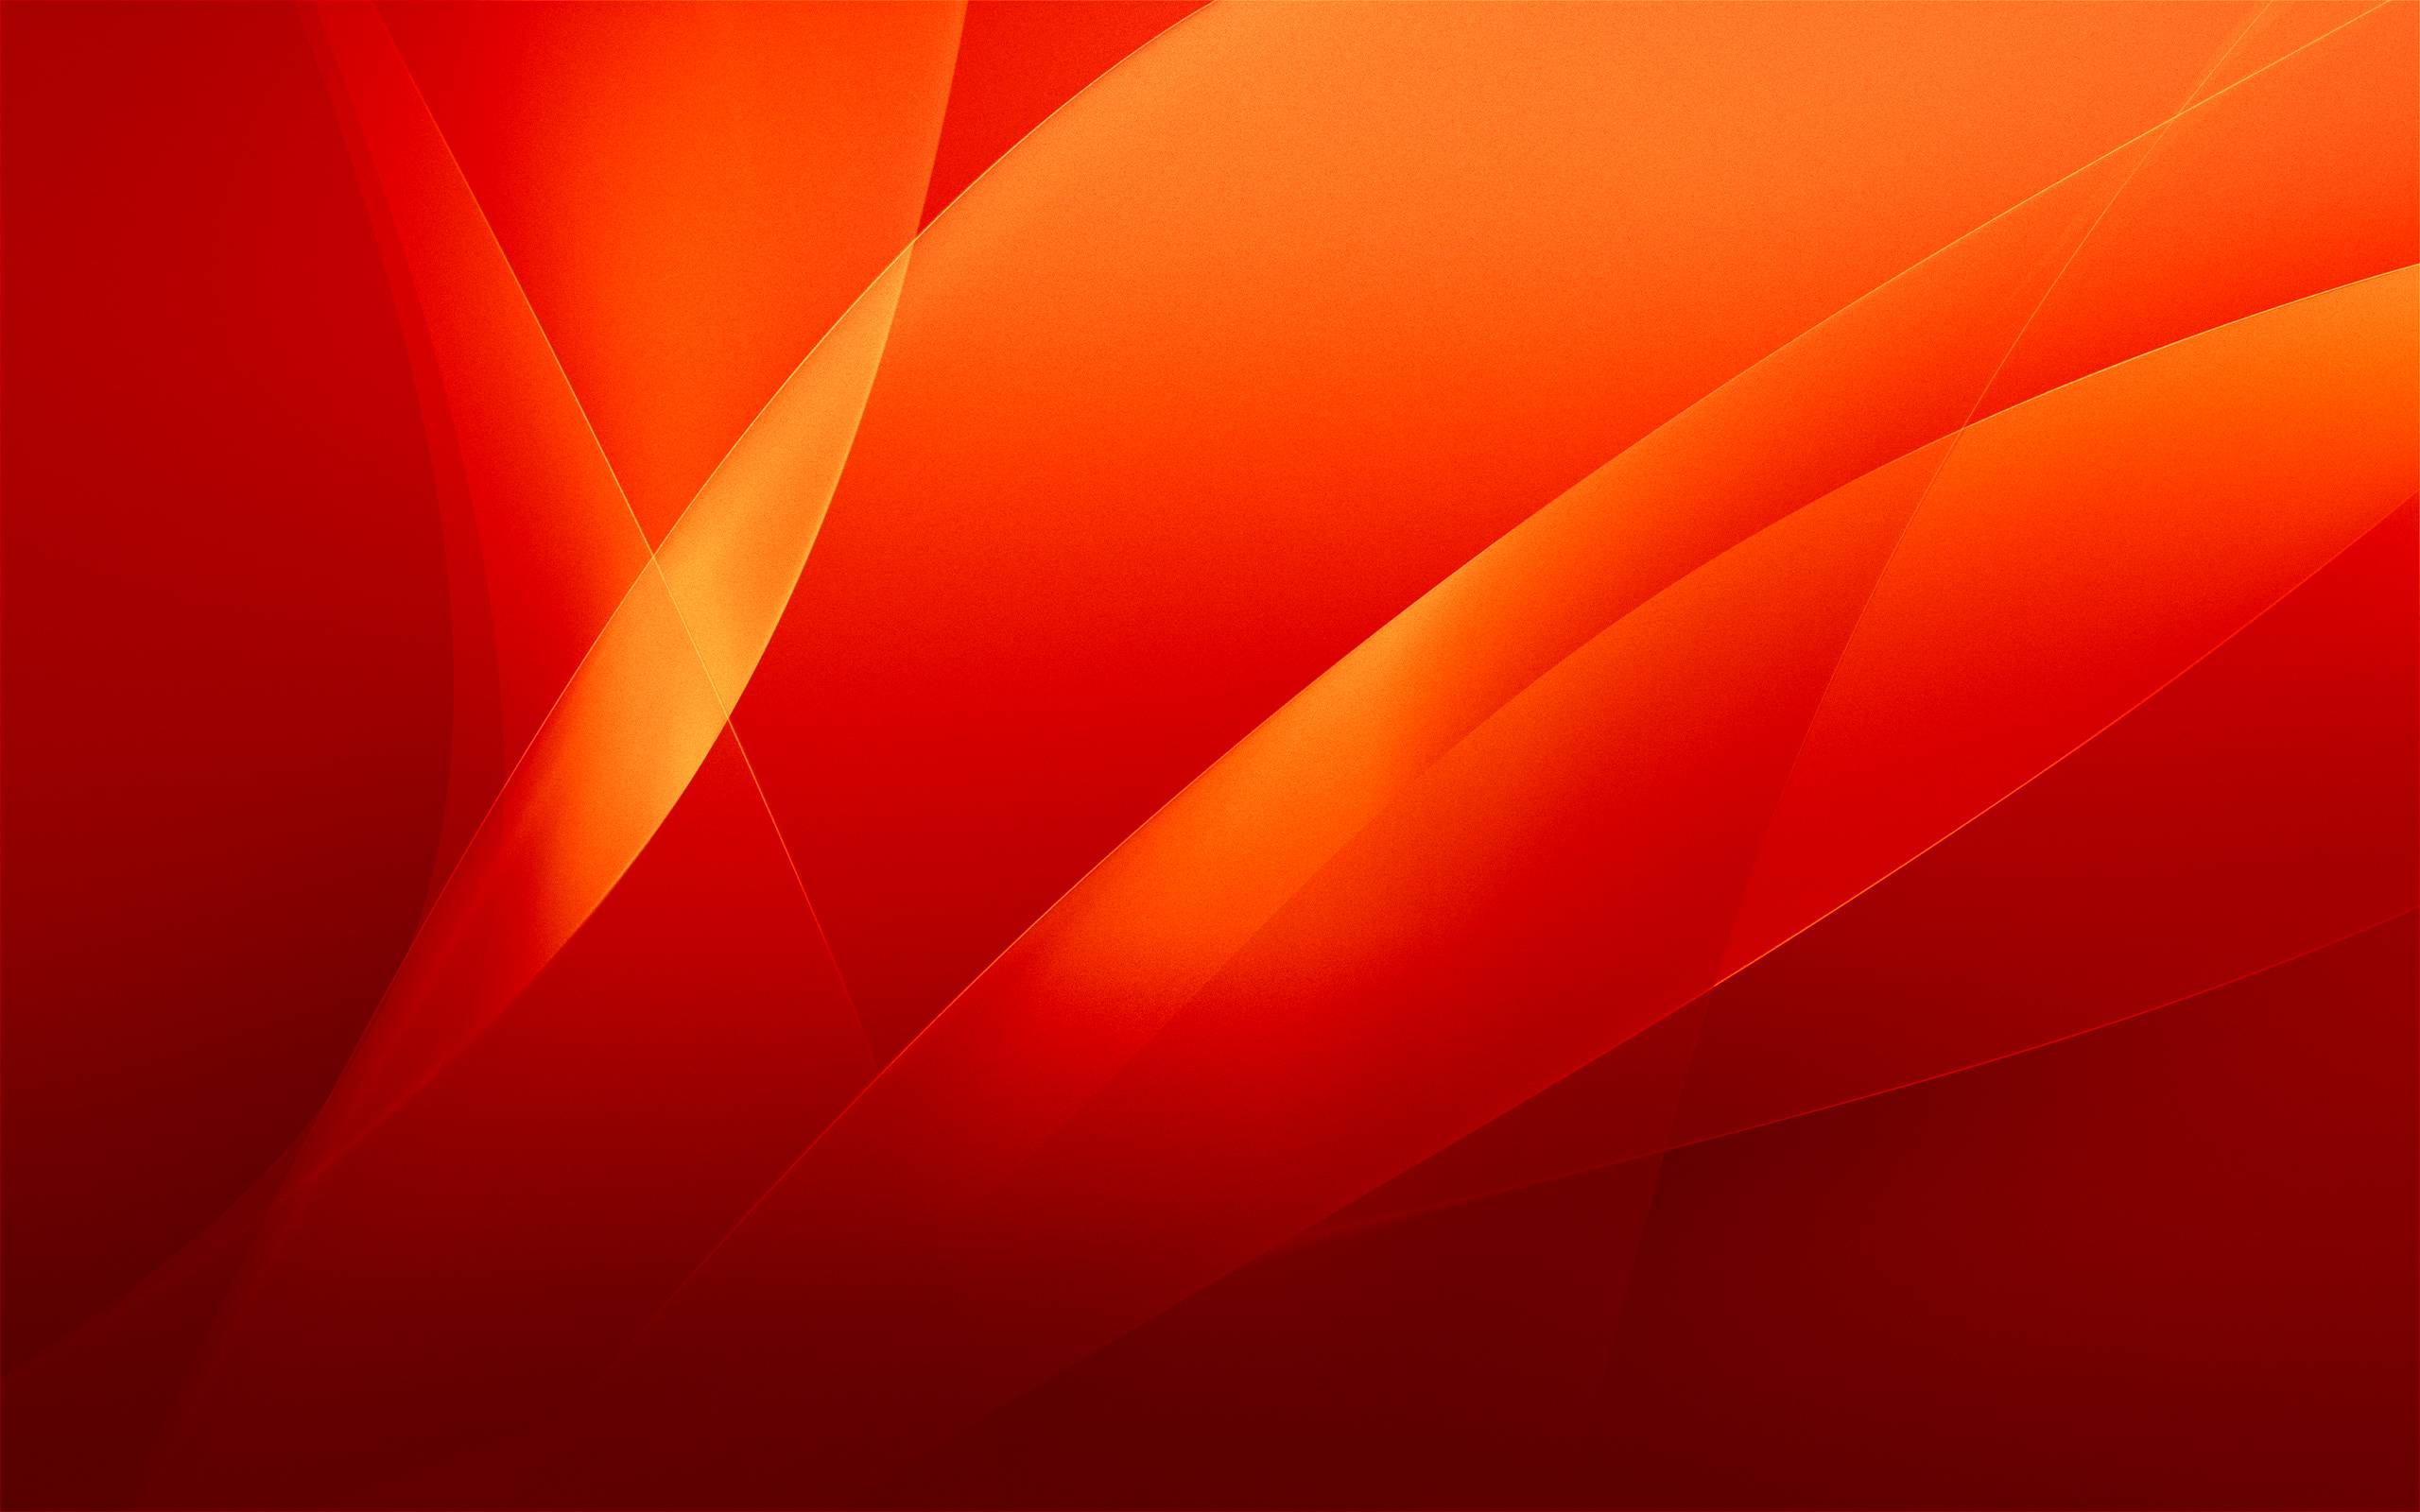 Red Background Images - Wallpaper Cave